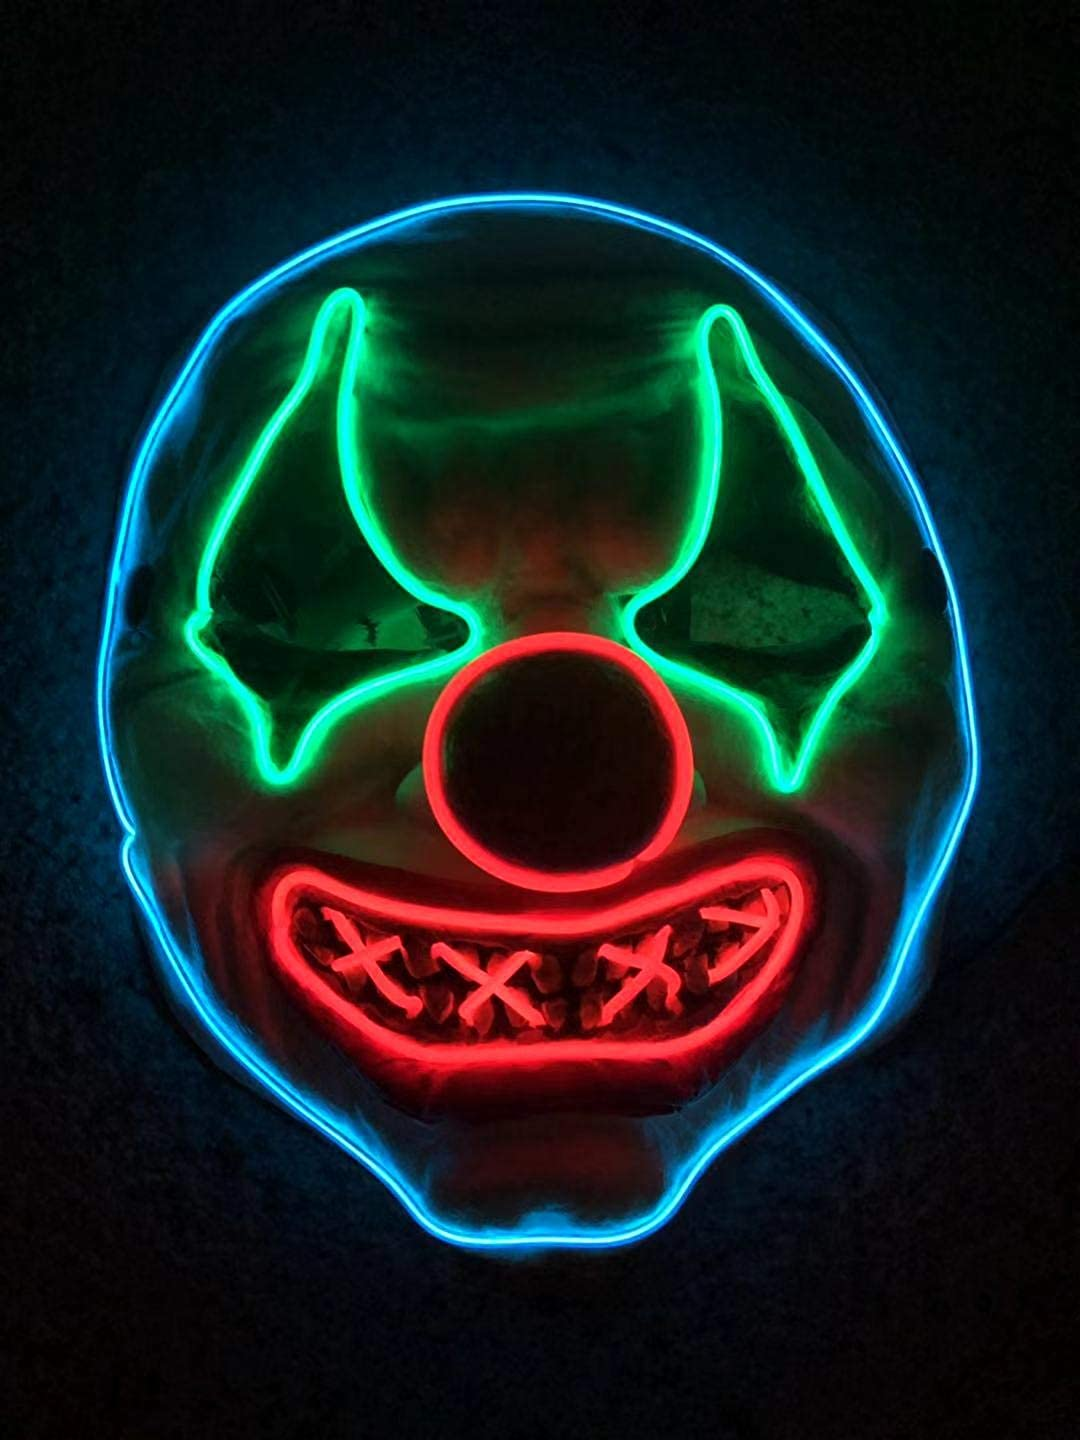 Blue,Green /& Red Lighting 2SupMask Halloween Clown Mask Light Up,Creepy Scary Funny Clown Rubber Night Glow El Masks Party Cosplay